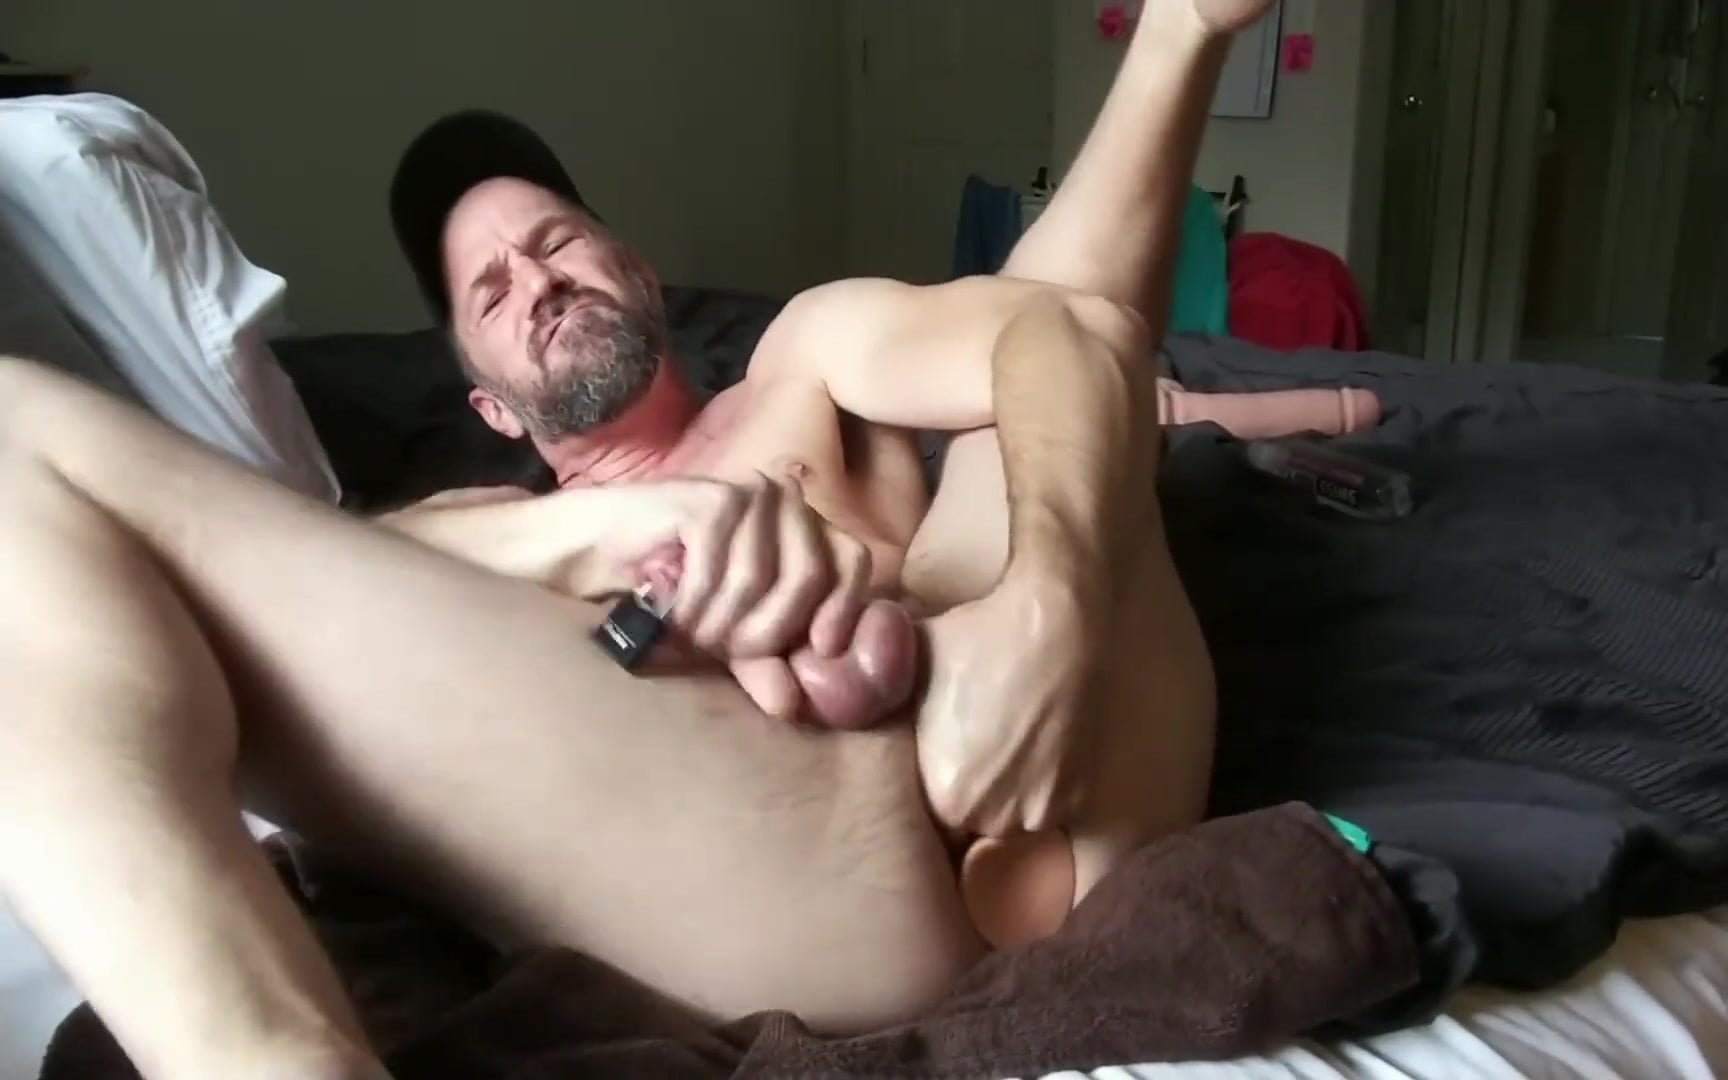 gays sucking dick and balls in 69 sex